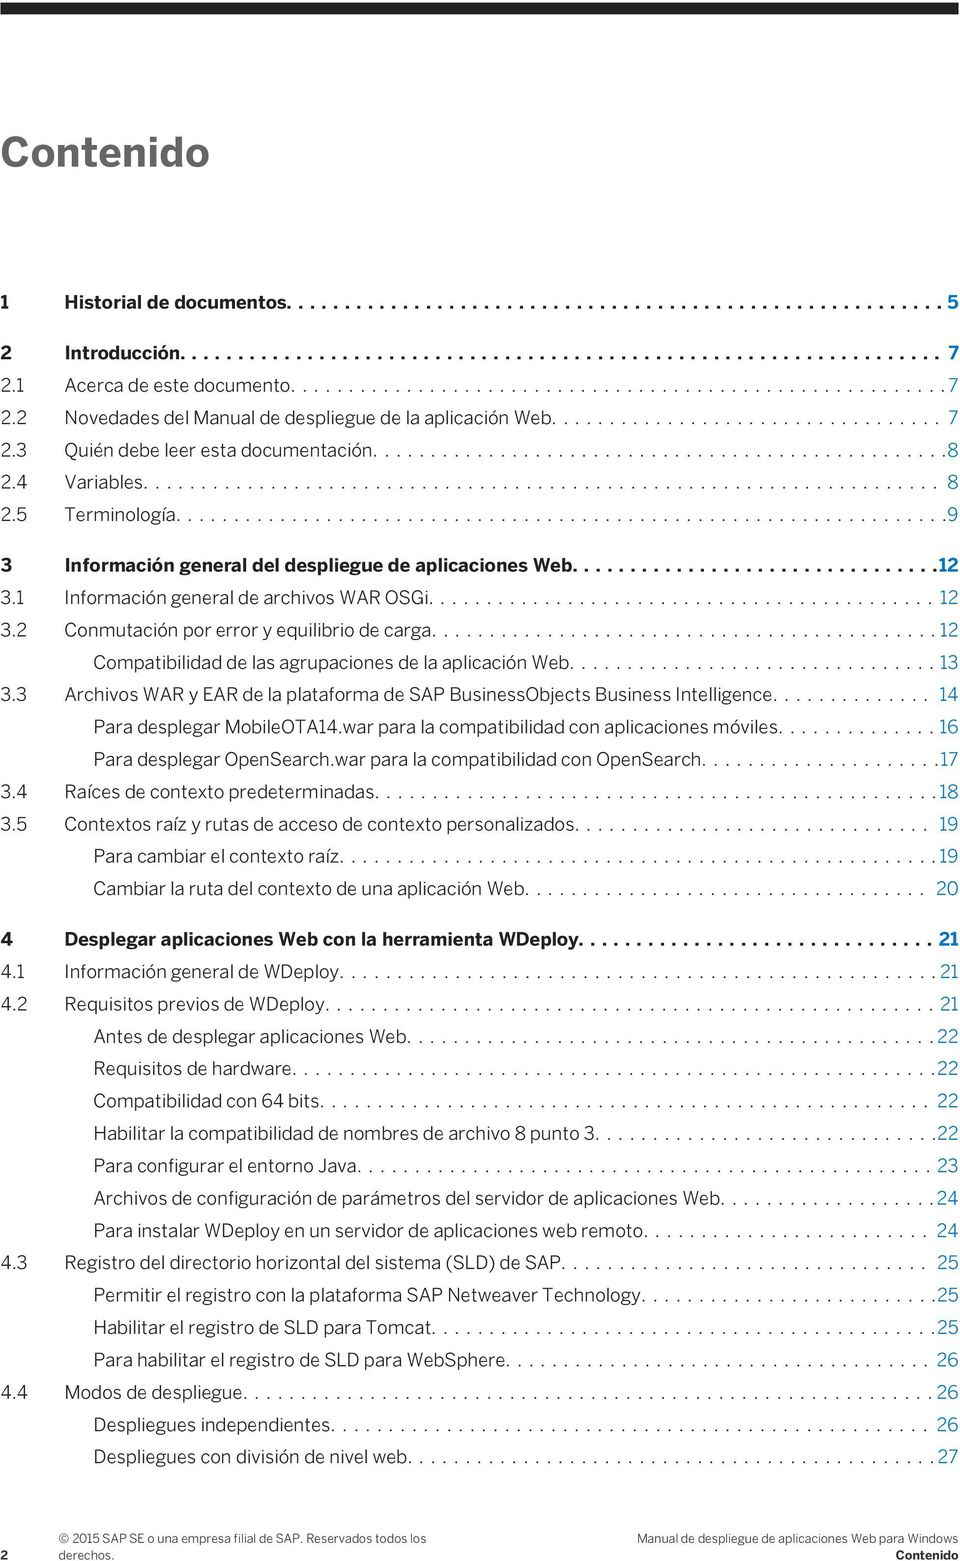 ...12 Compatibilidad de las agrupaciones de la aplicación Web....13 3.3 Archivos WAR y EAR de la plataforma de SAP BusinessObjects Business Intelligence.... 14 Para desplegar MobileOTA14.